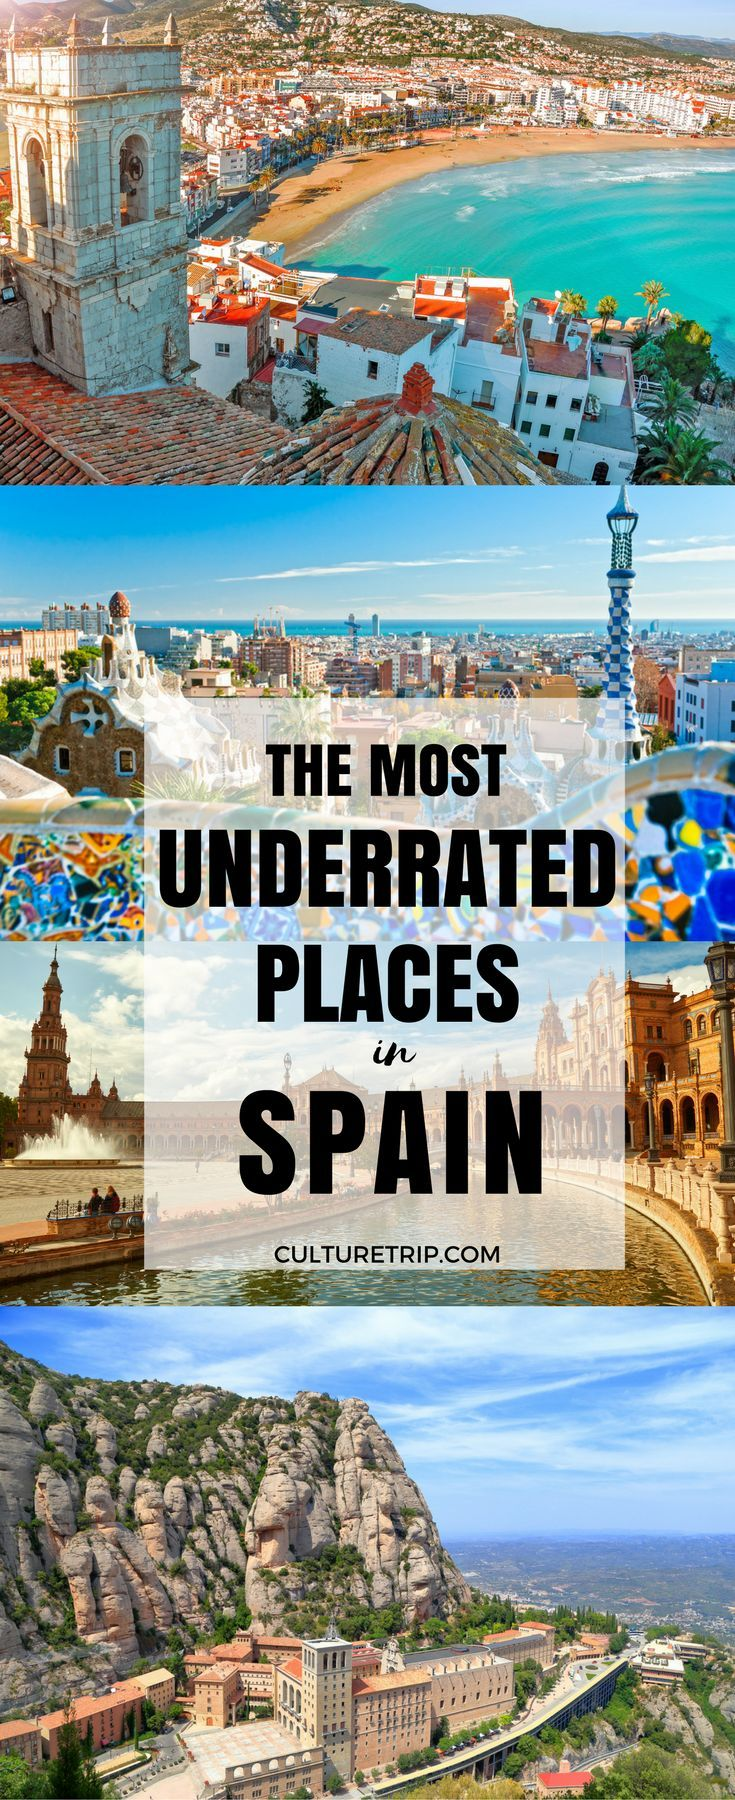 The Most Underrated Places To Visit In Spain In Spain - Spain vacation